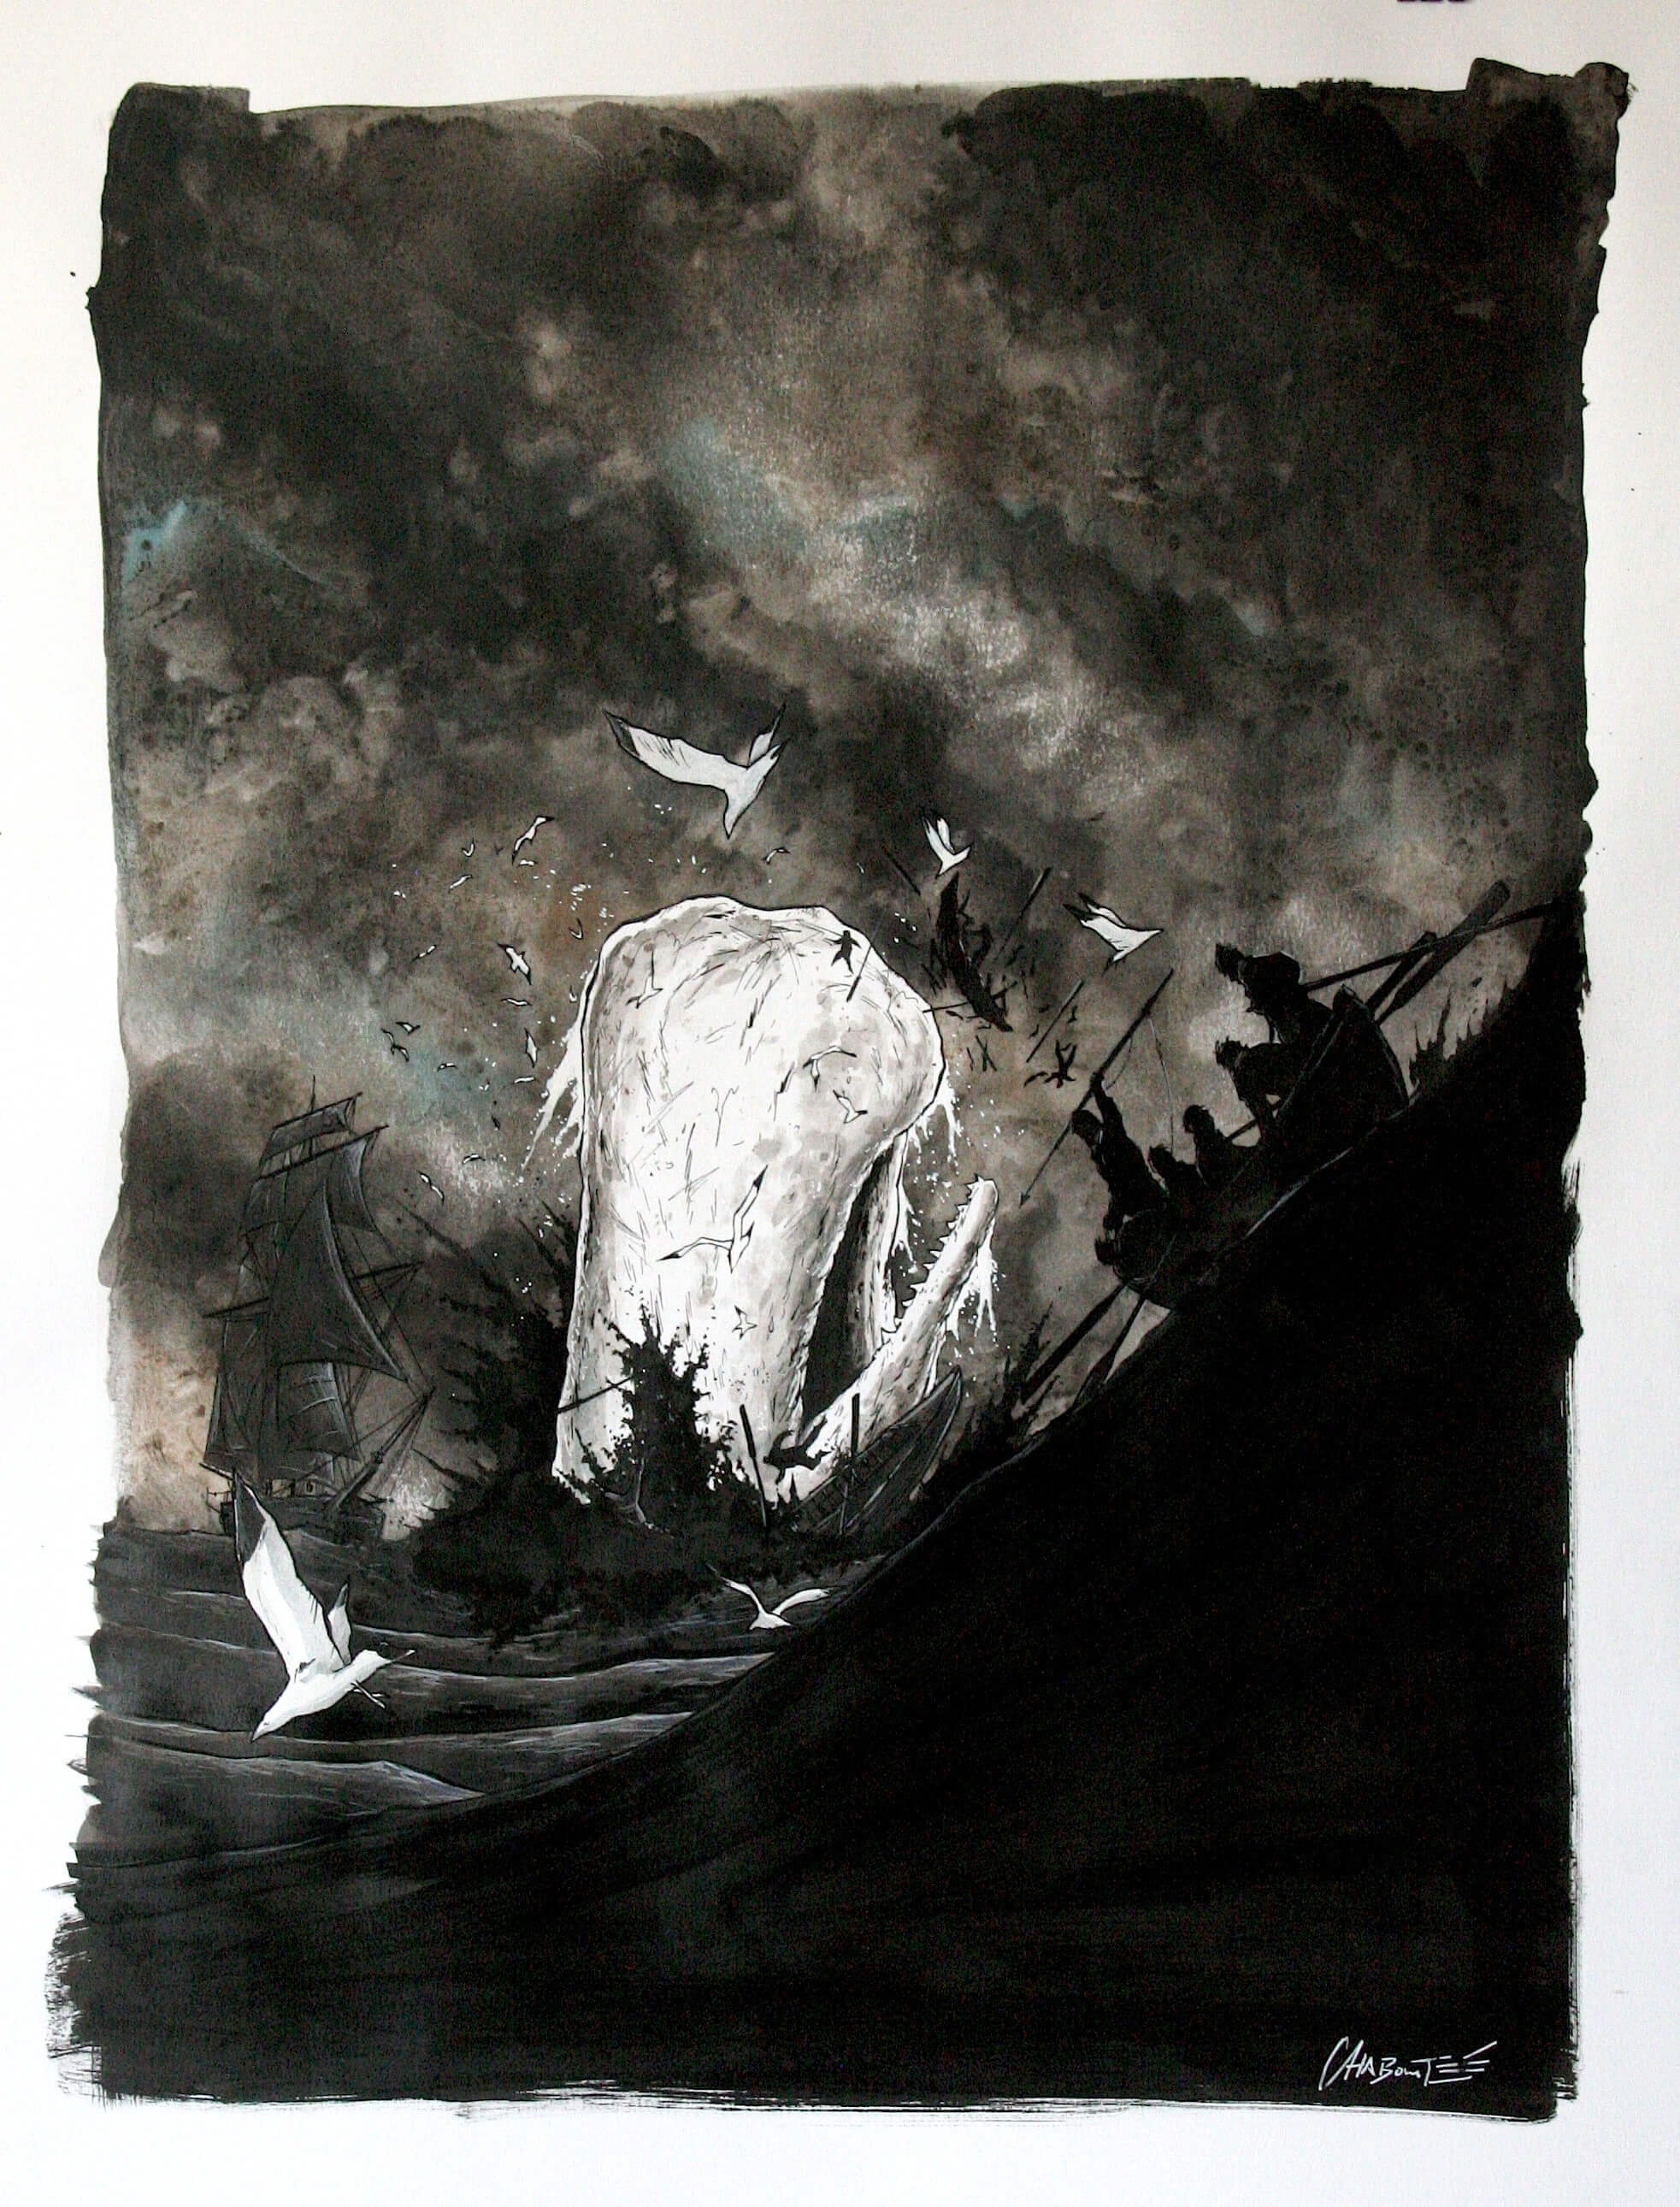 moby dick dark horse2 1 - Moby Dick Swimming into Comic Stores Next Month